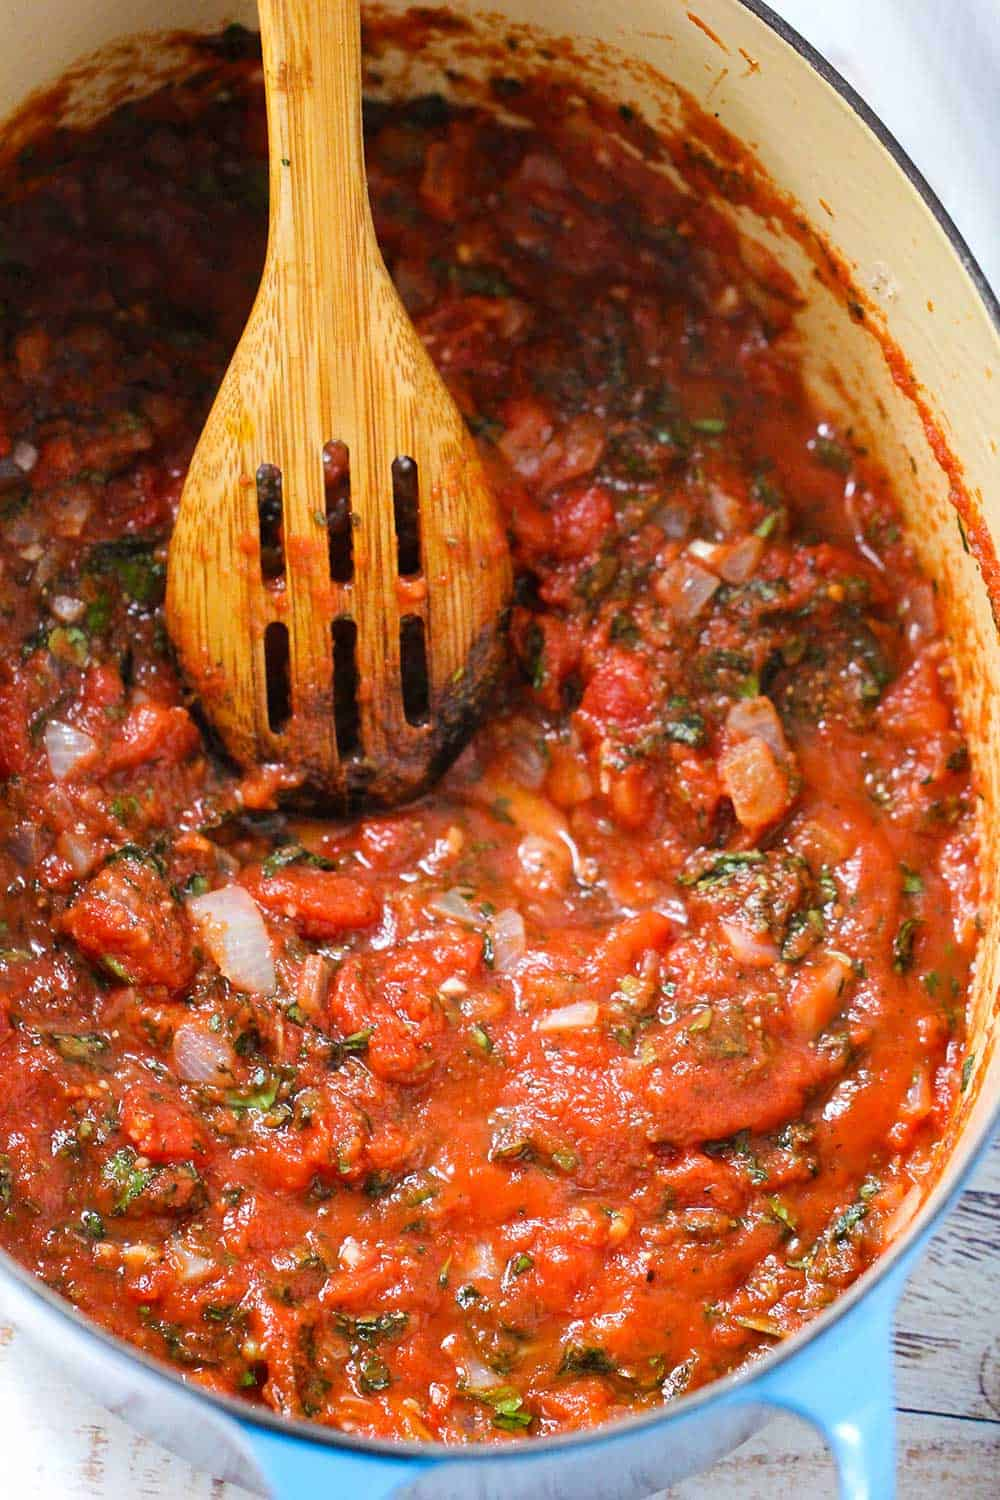 A large blue Dutch oven with tomatoes and herbs simmering in it with a wooden spoon in the pot.